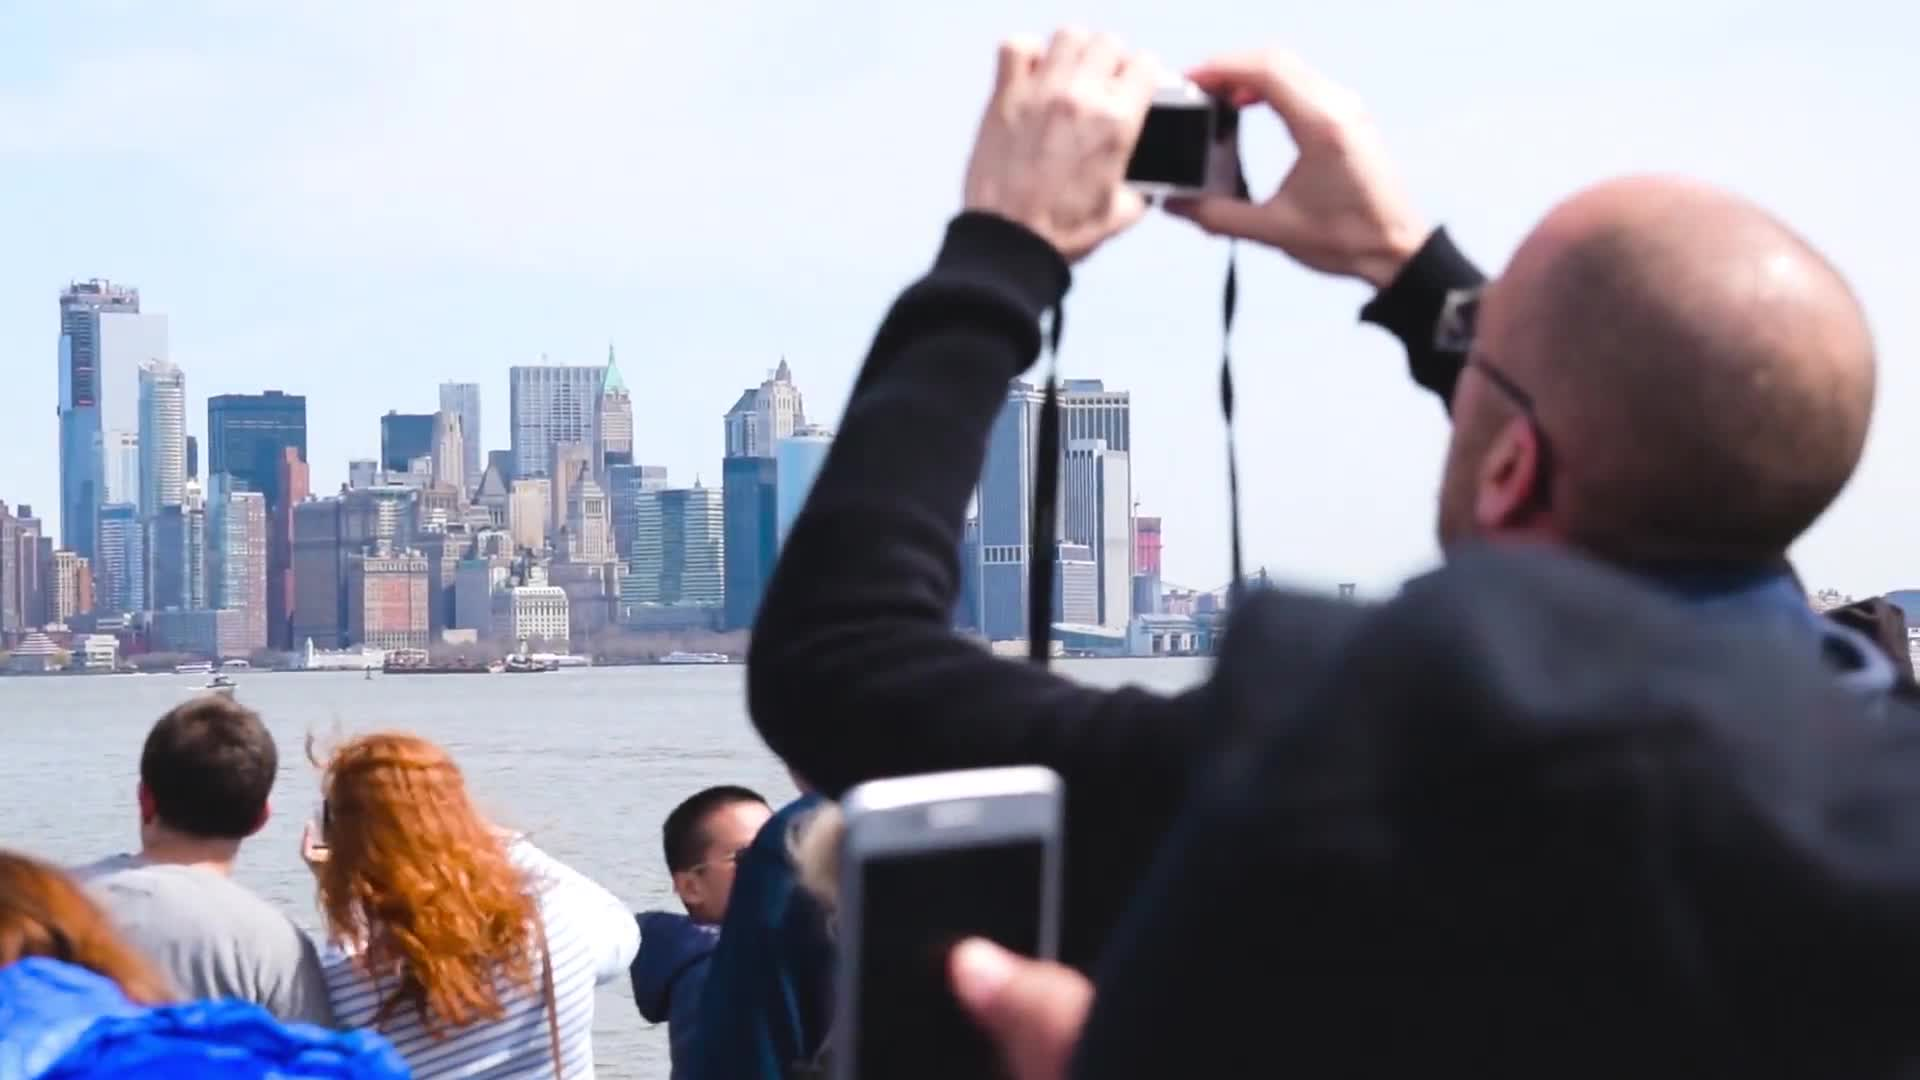 New york skyline and people